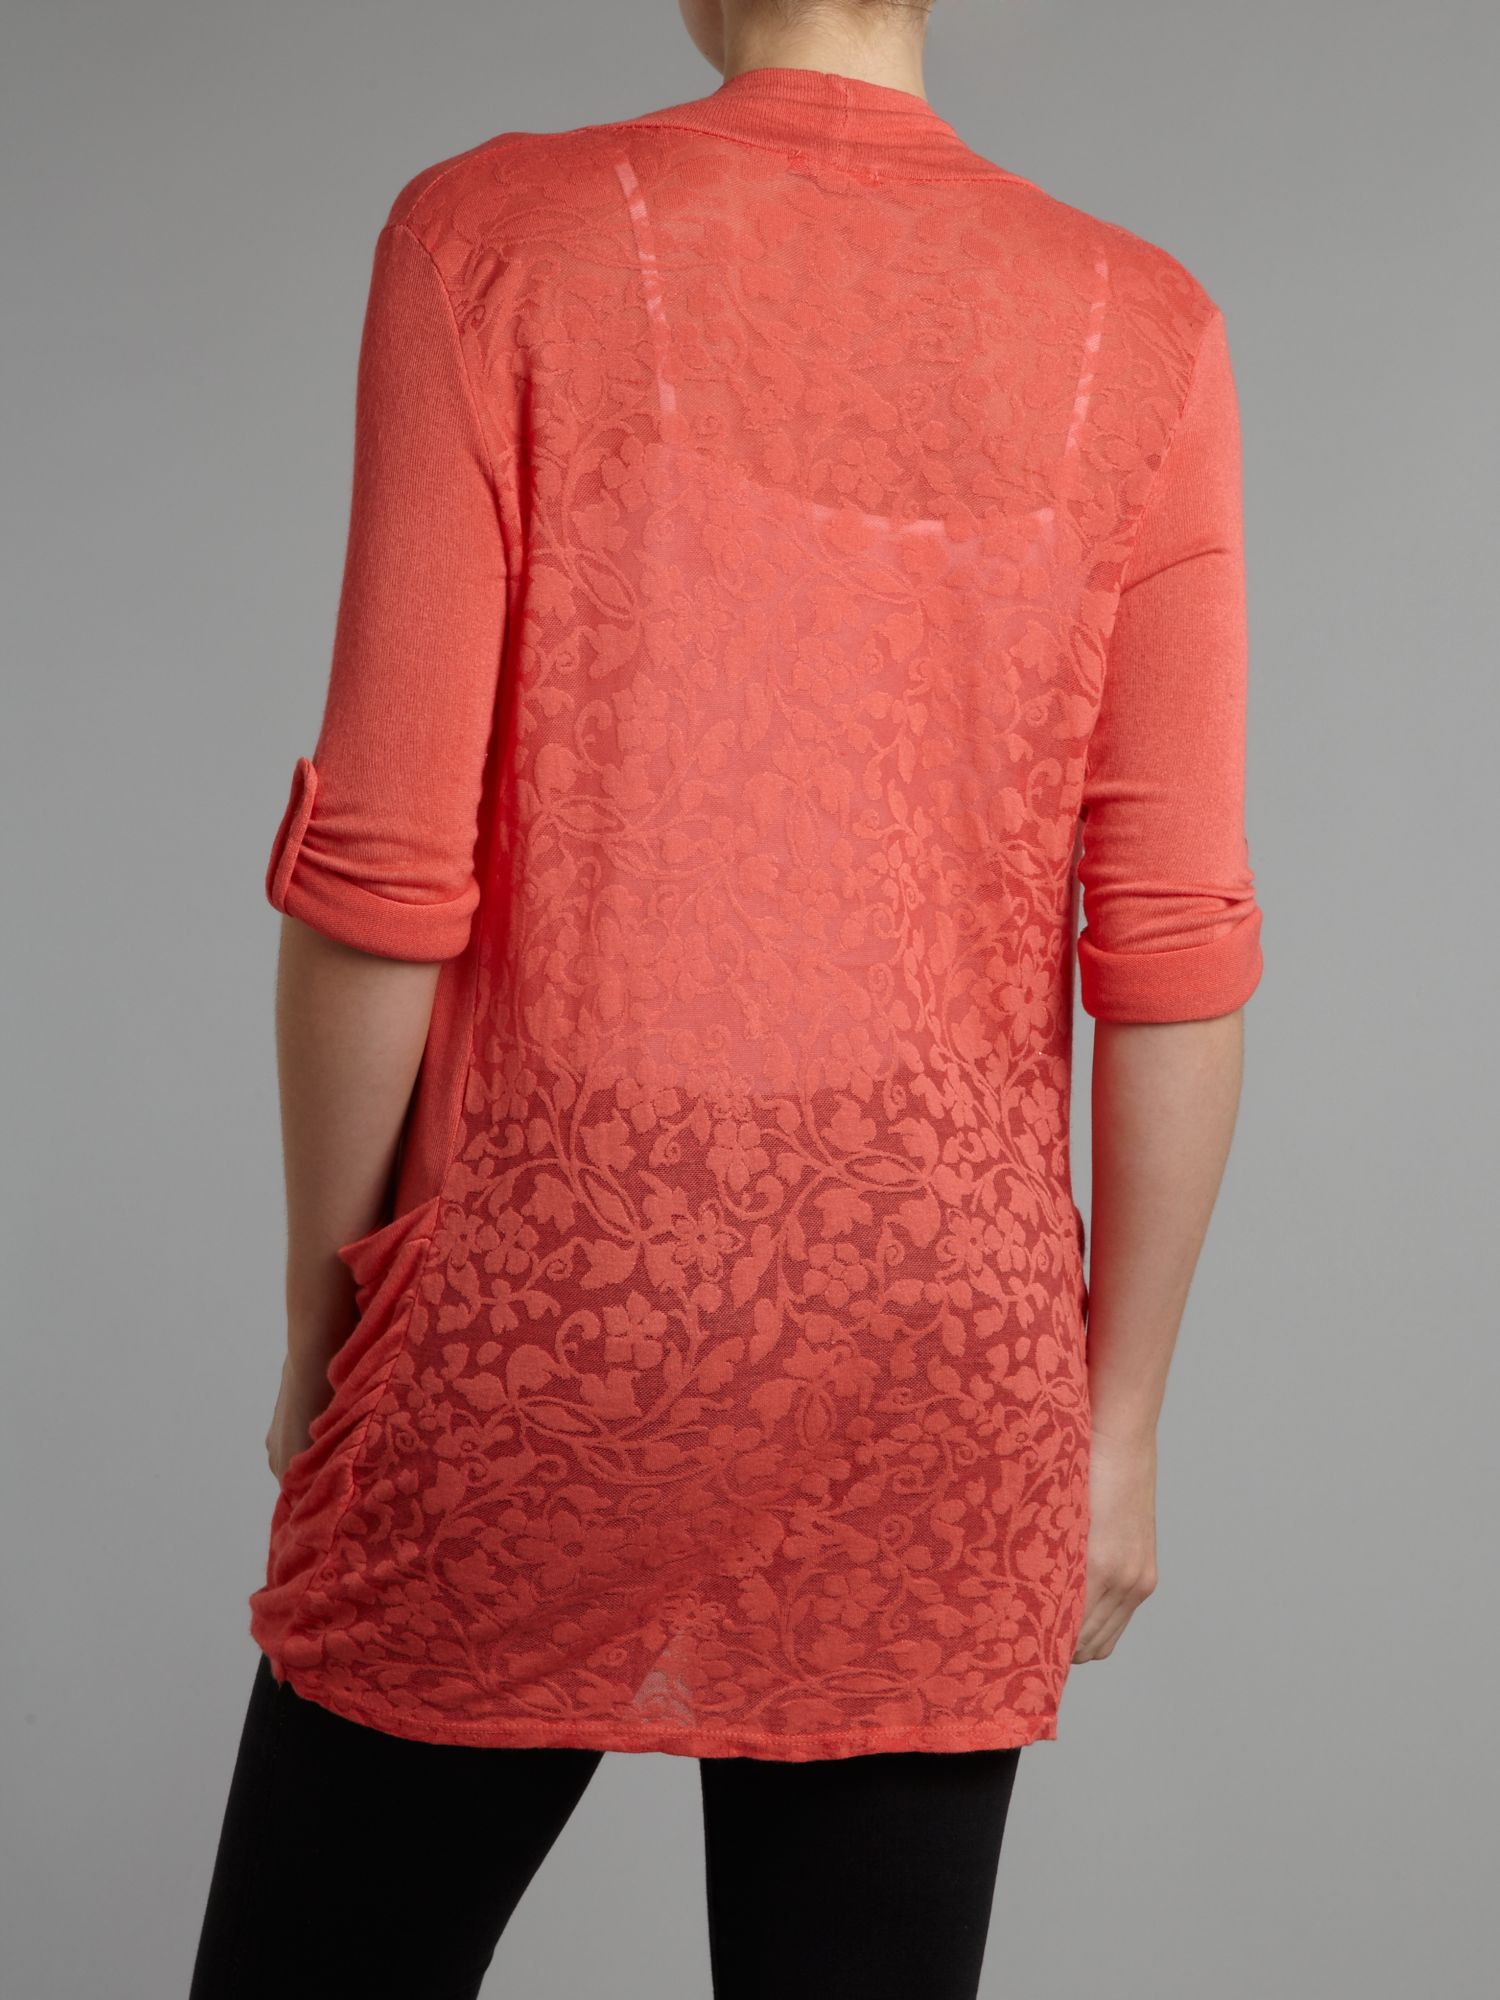 Wal-g Waterfall Lace Back Cardigan in Red   Lyst